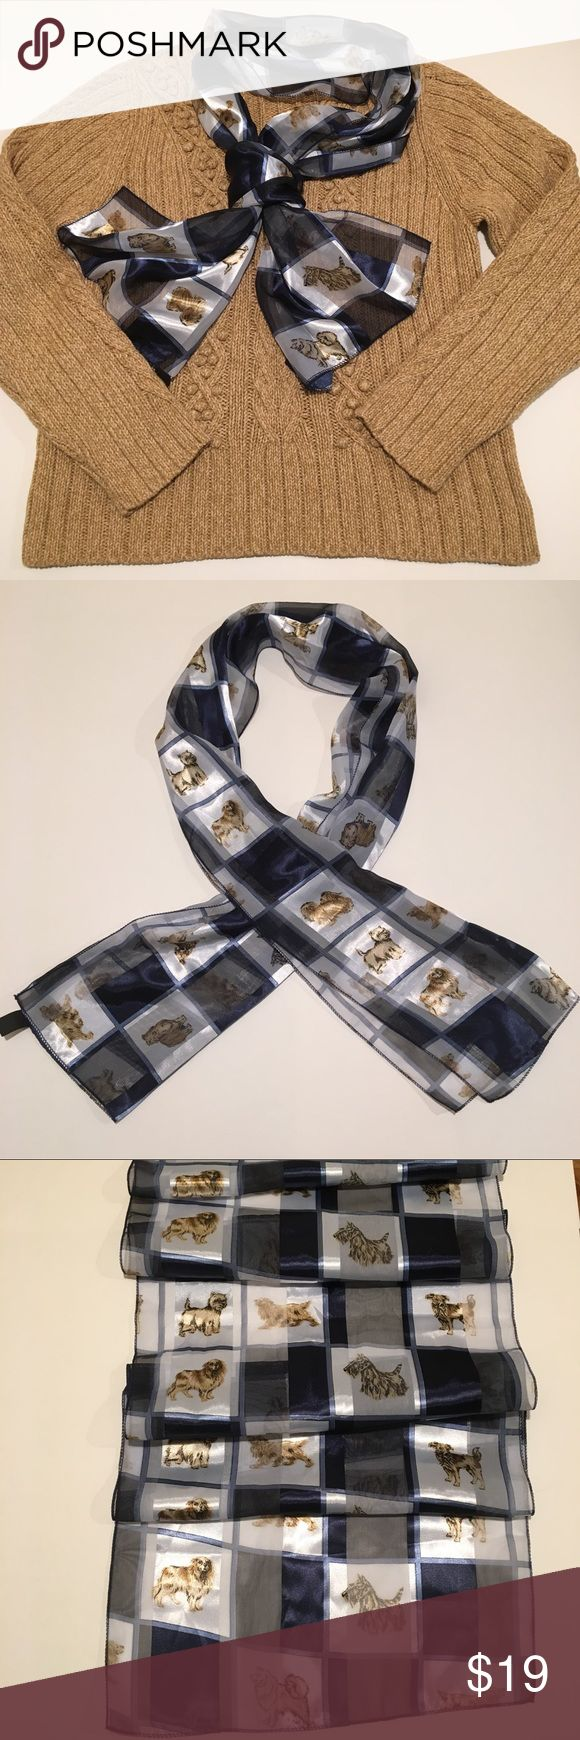 """Dog print scarf Scotty Lhasa Collie Cairn Cocker Dog lover alert! Get this gorgeous scarf filled with beautiful dog images. In like-new condition. Lovely color combination of navy blue, colonial blue, white, and gold. Silky fabric (polyester) is very comfortable. Many different dog breeds pictured Cavalier King Charles spaniel's, Cocker spaniel, Cairn Terrier, Scottish terrier, Collie, Jack Russell, Samoyed, Lhasa Apso, """"All American"""" mixed breed. Smoke-free home. Liz Claiborne sweater sold…"""